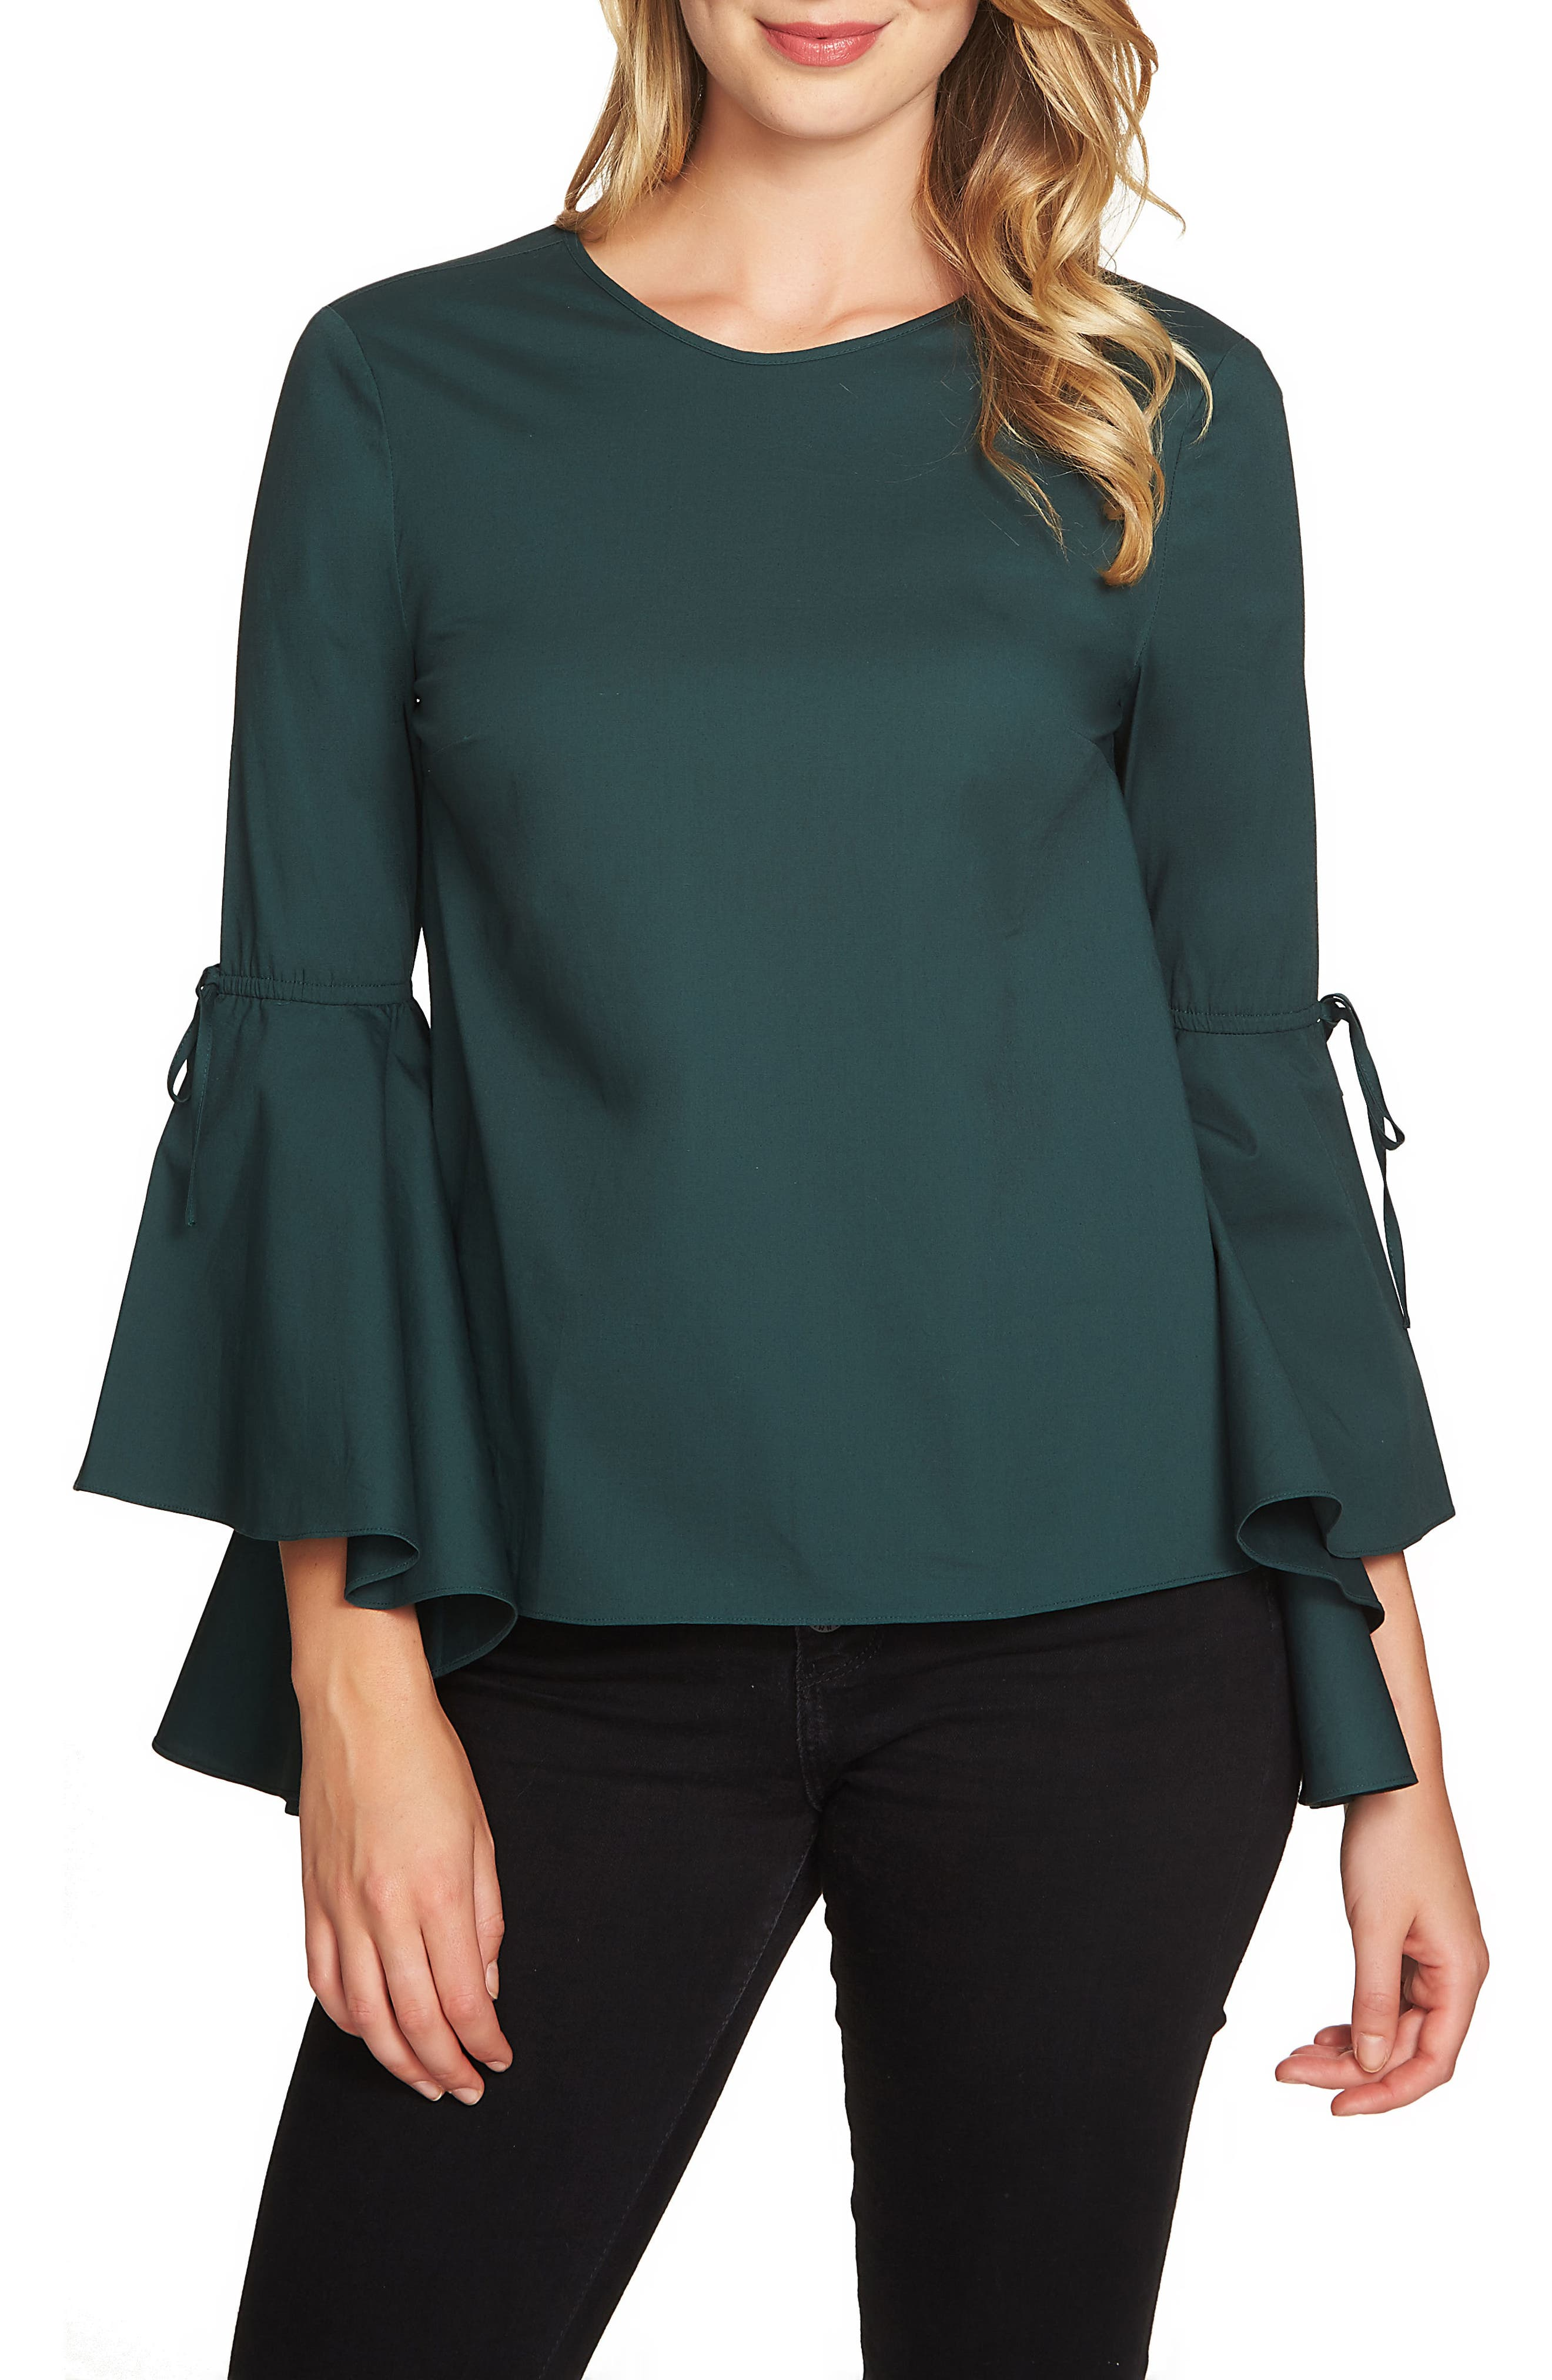 Main Image - 1.STATE Cascade Sleeve Top